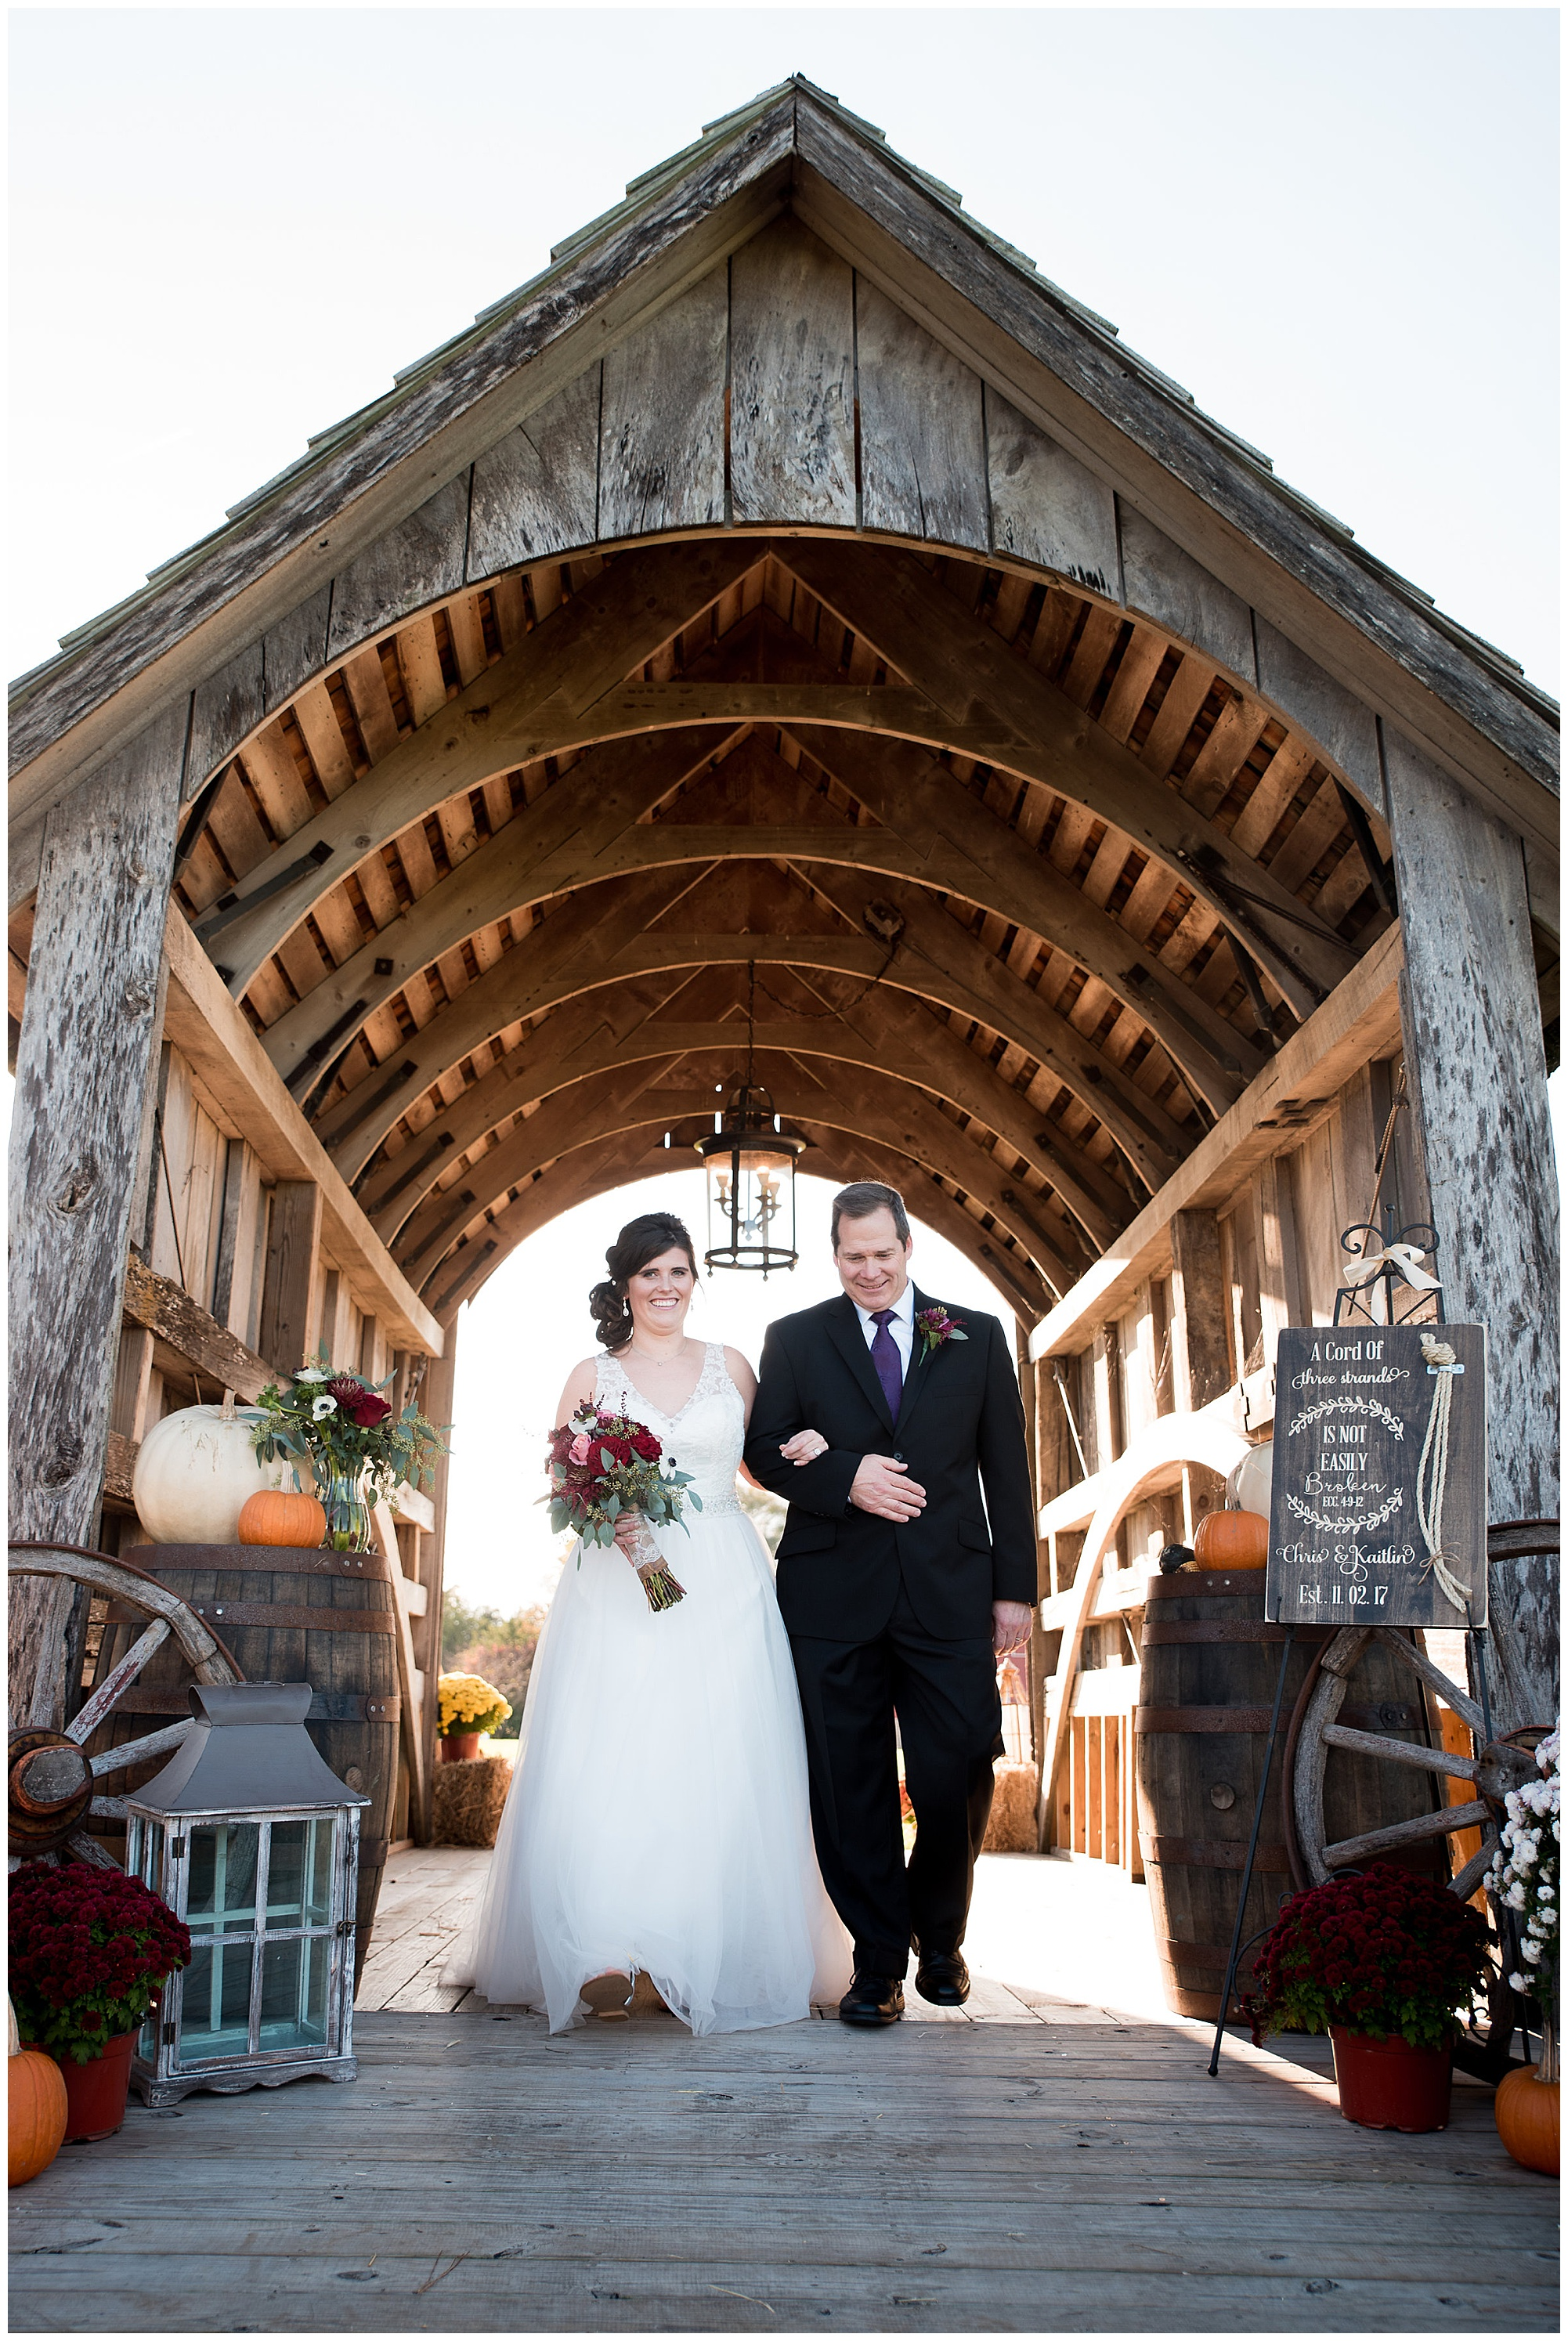 bride and father walking down the aisle. wedding photos outdoors at covered bridge inn in lewes delaware. historic wedding barn venue on the eastern shore. fall wedding in november with rustic decor theme.